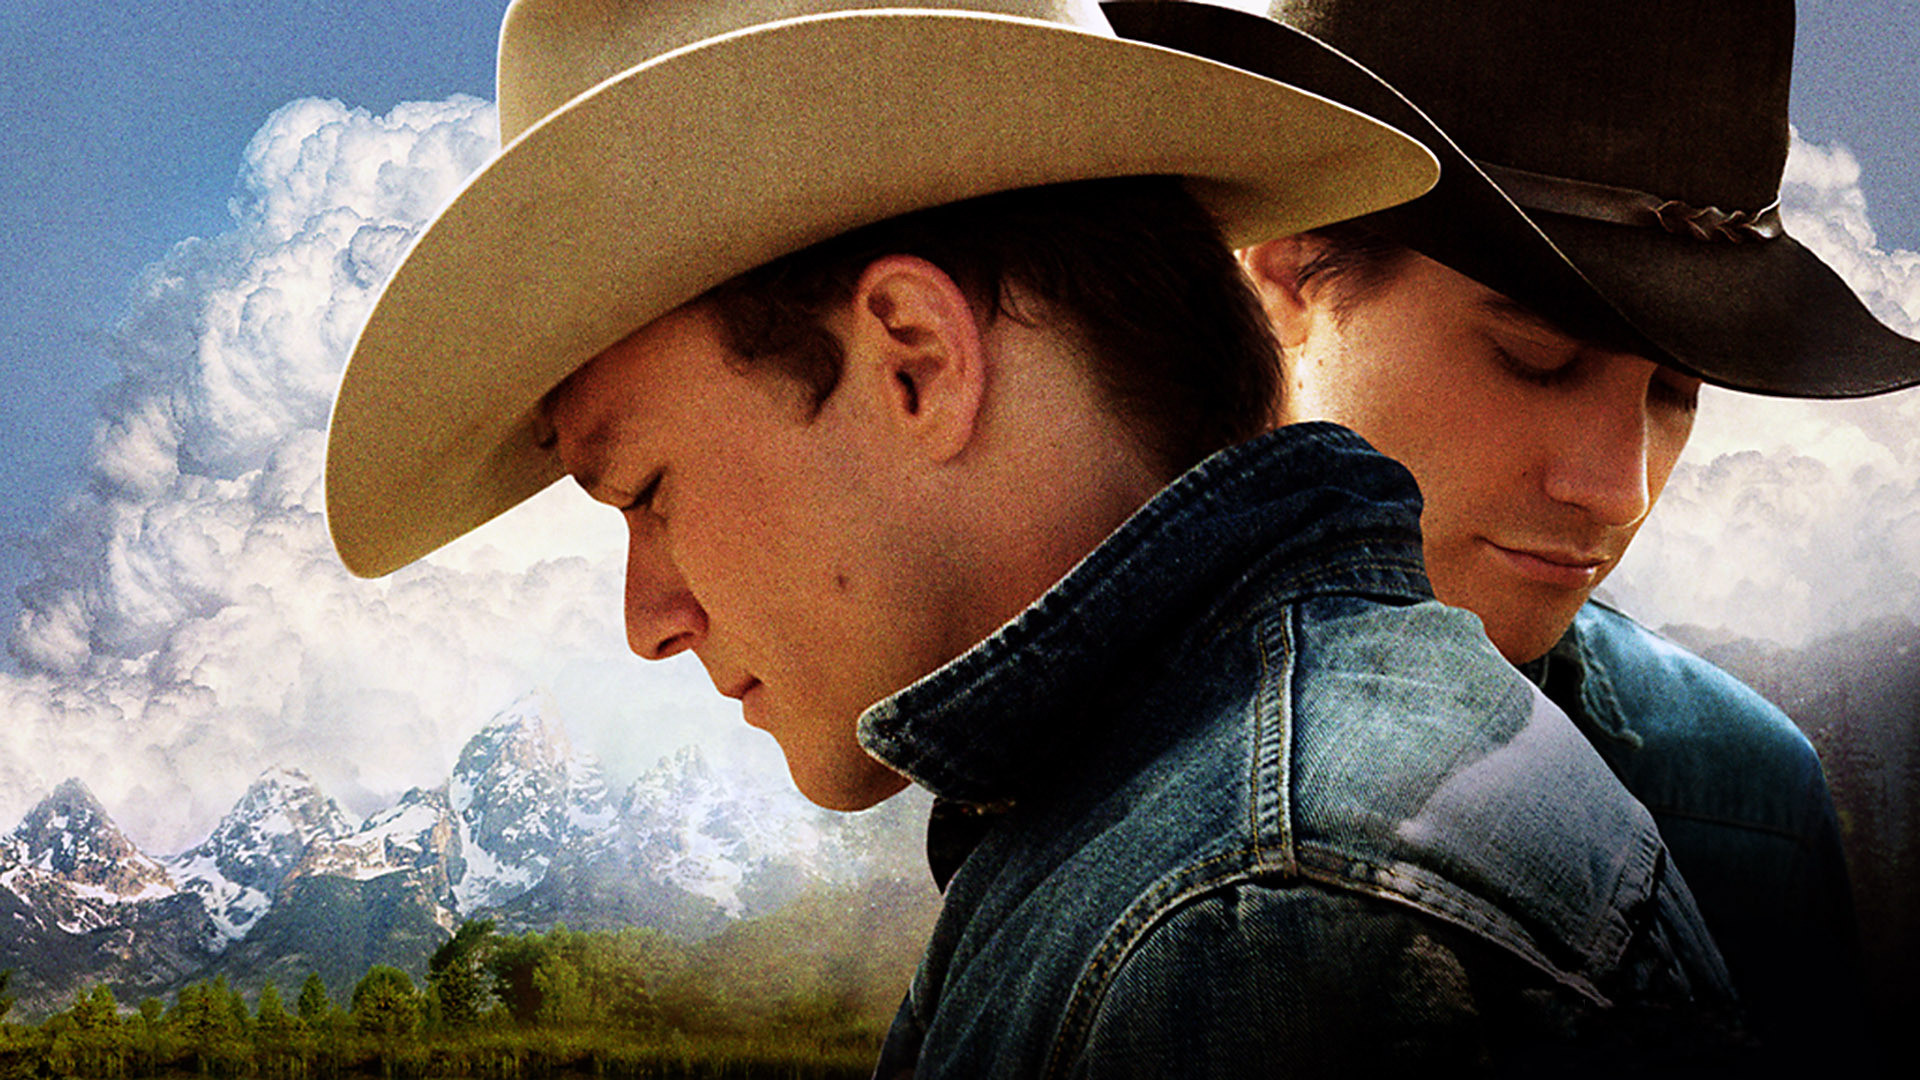 BROKEBACK MOUNTAIN REMAKE WILL BE HETEROSEXUAL